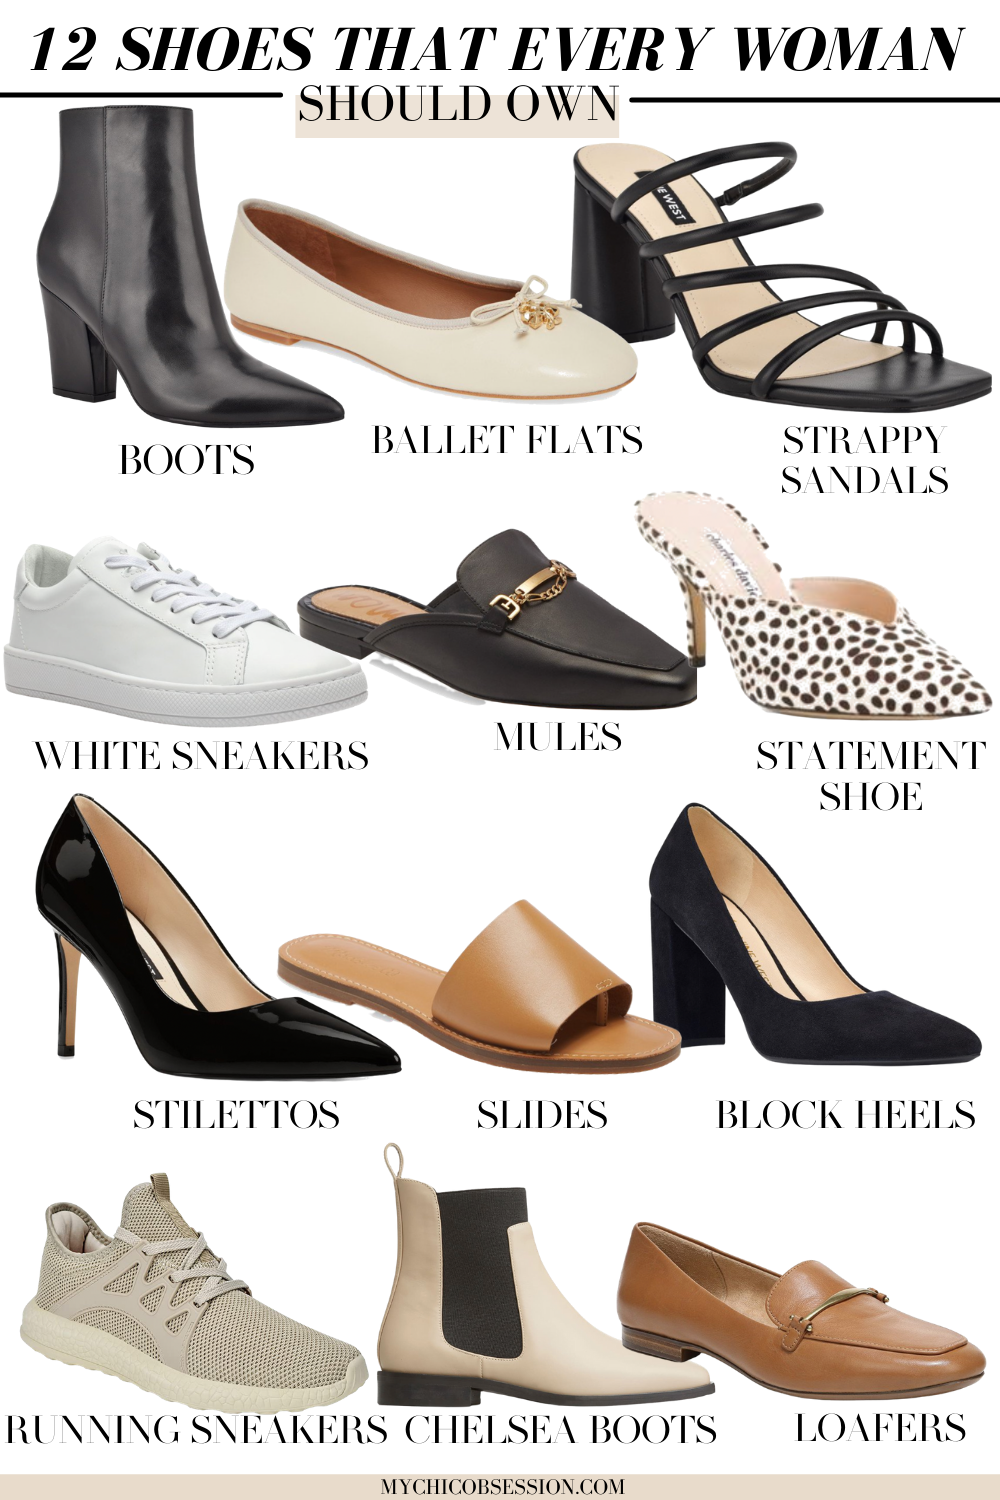 12 shoes every woman should own